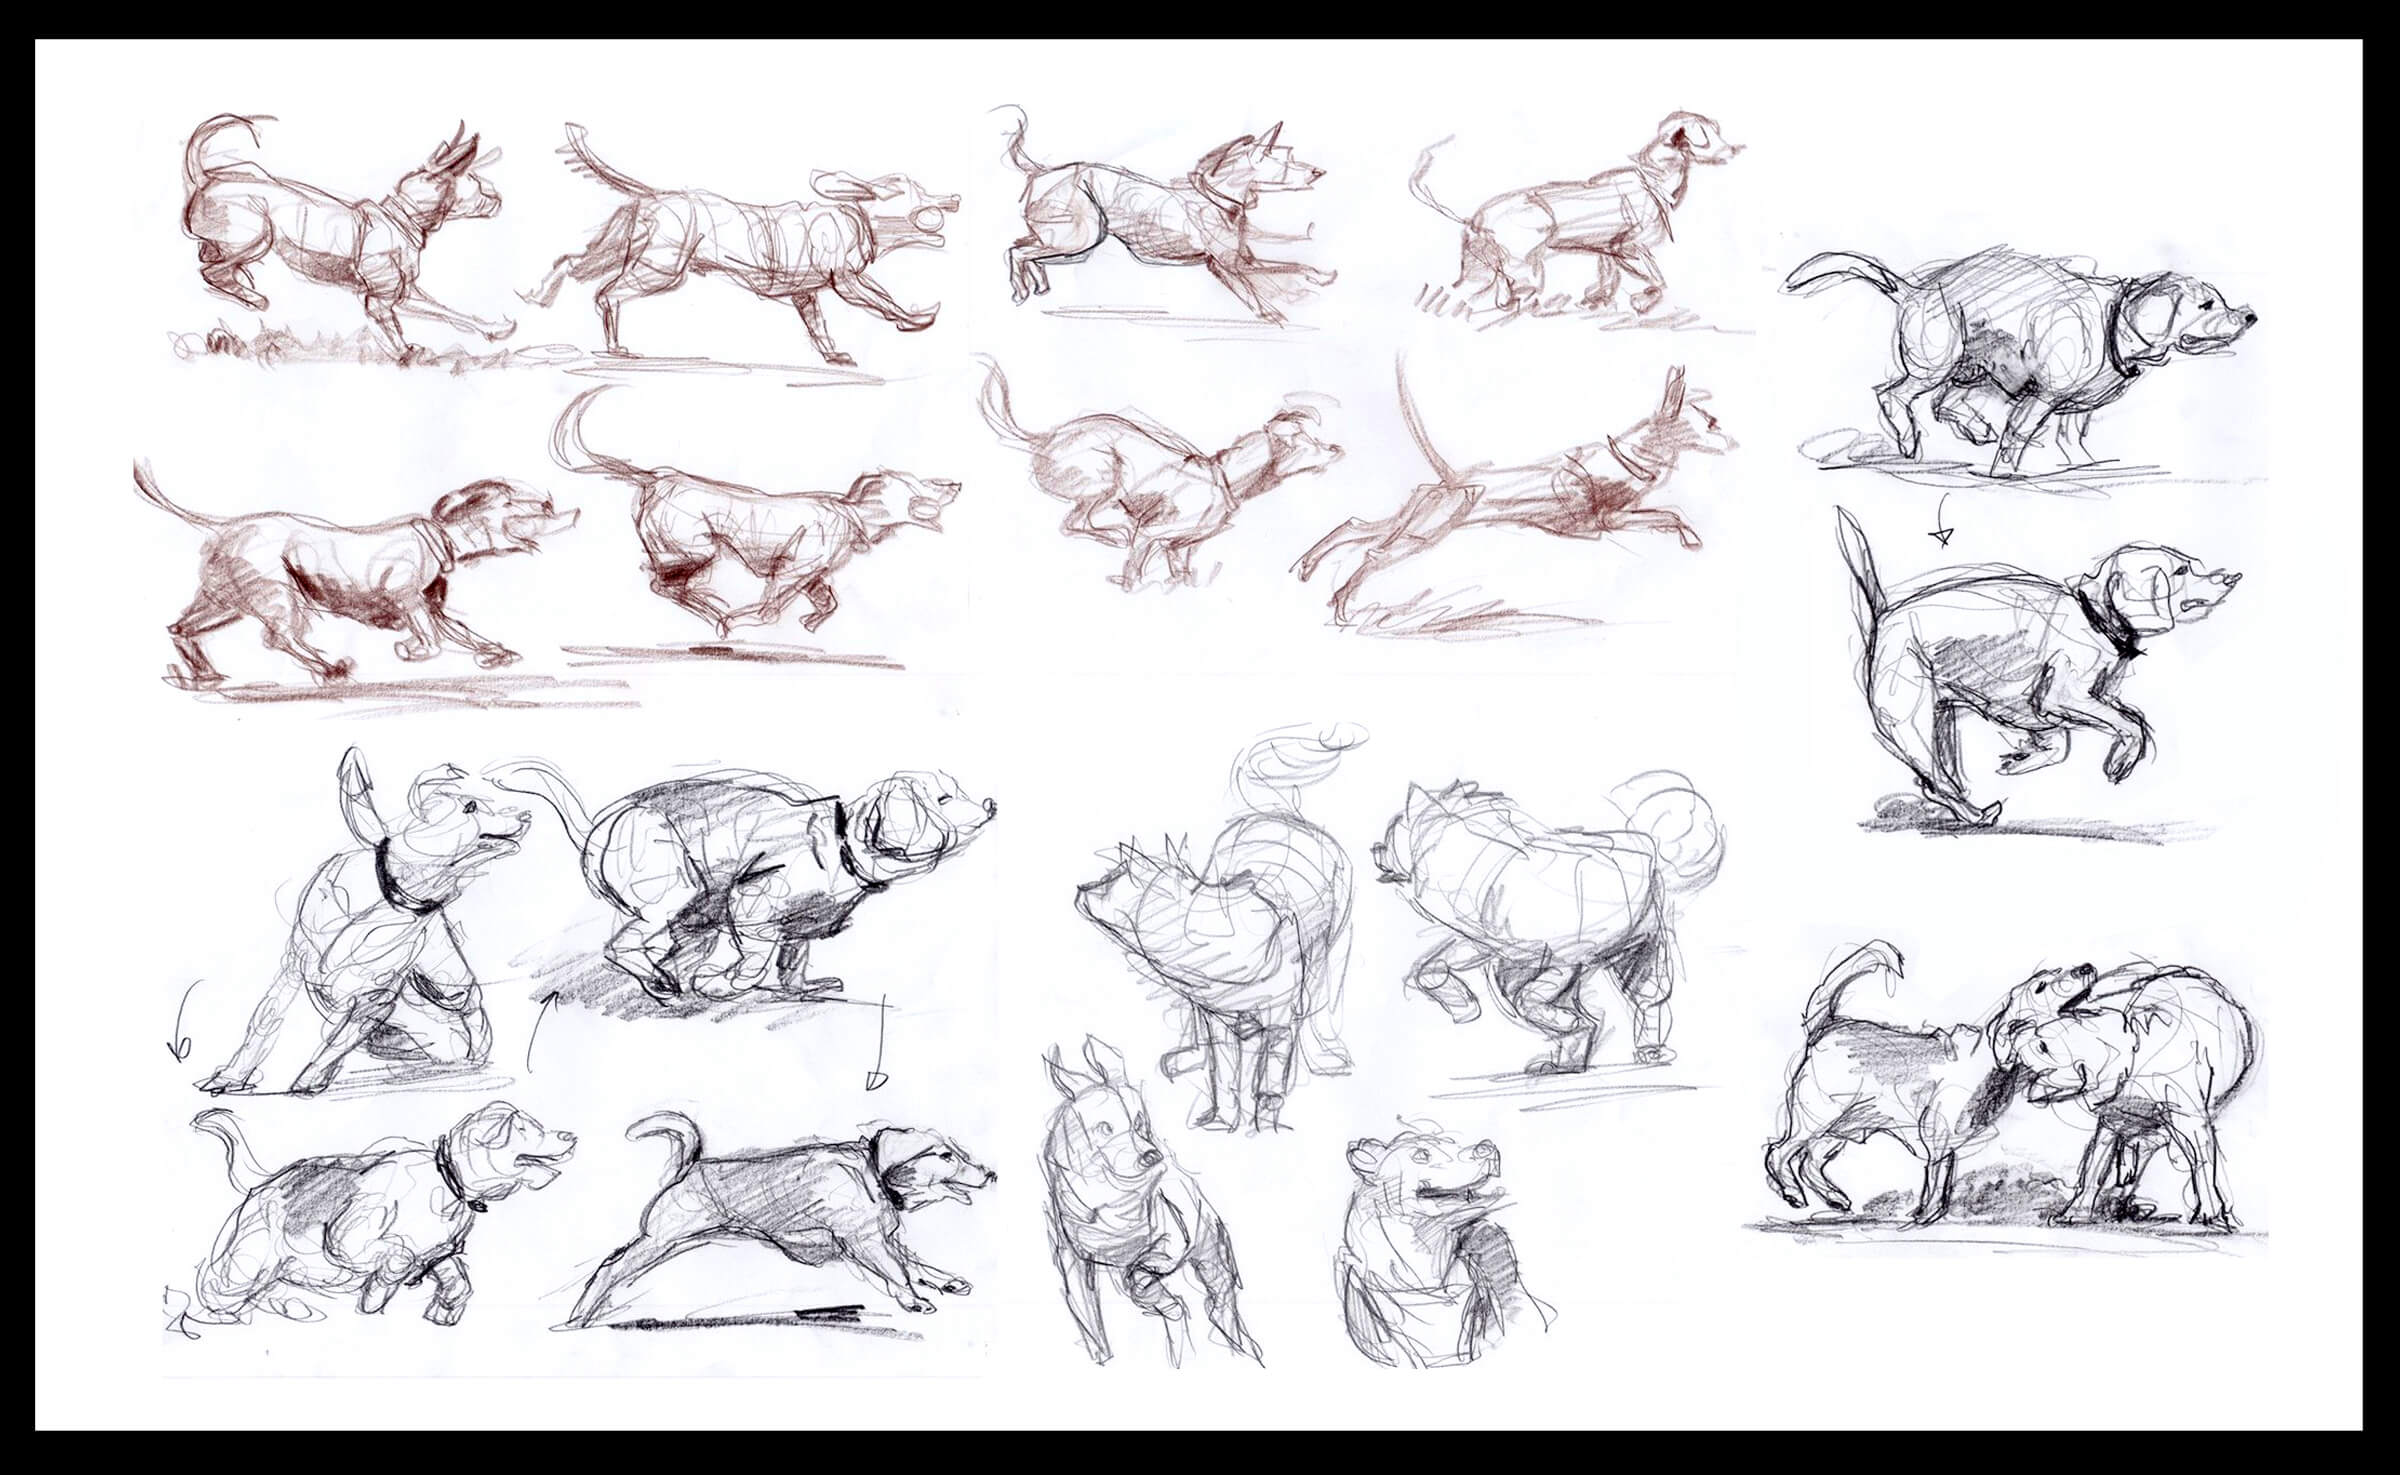 drawing of dogs in various states of play